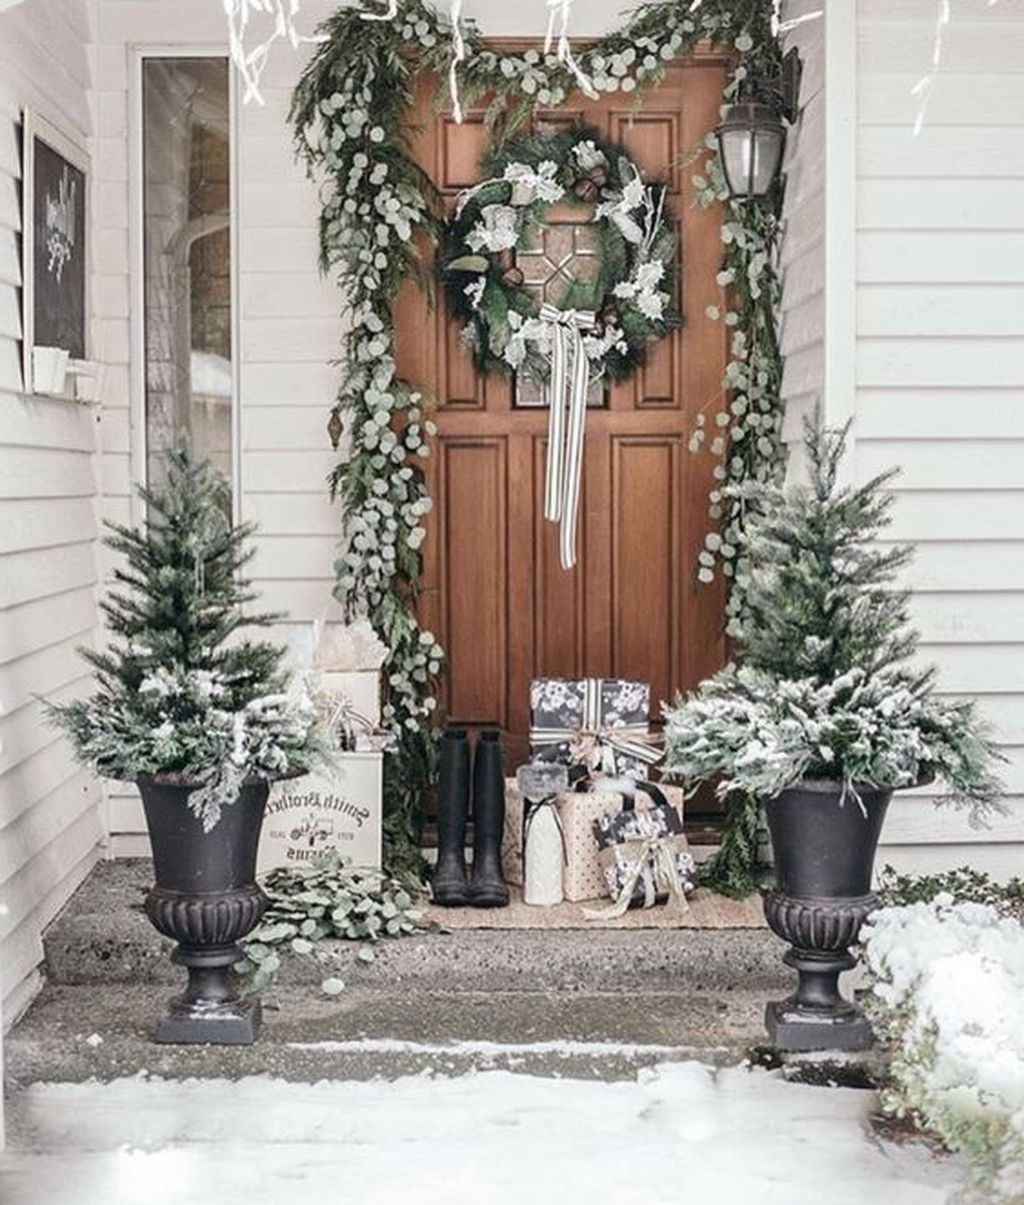 Outdoor Winter Accessories Help To Build A Festive